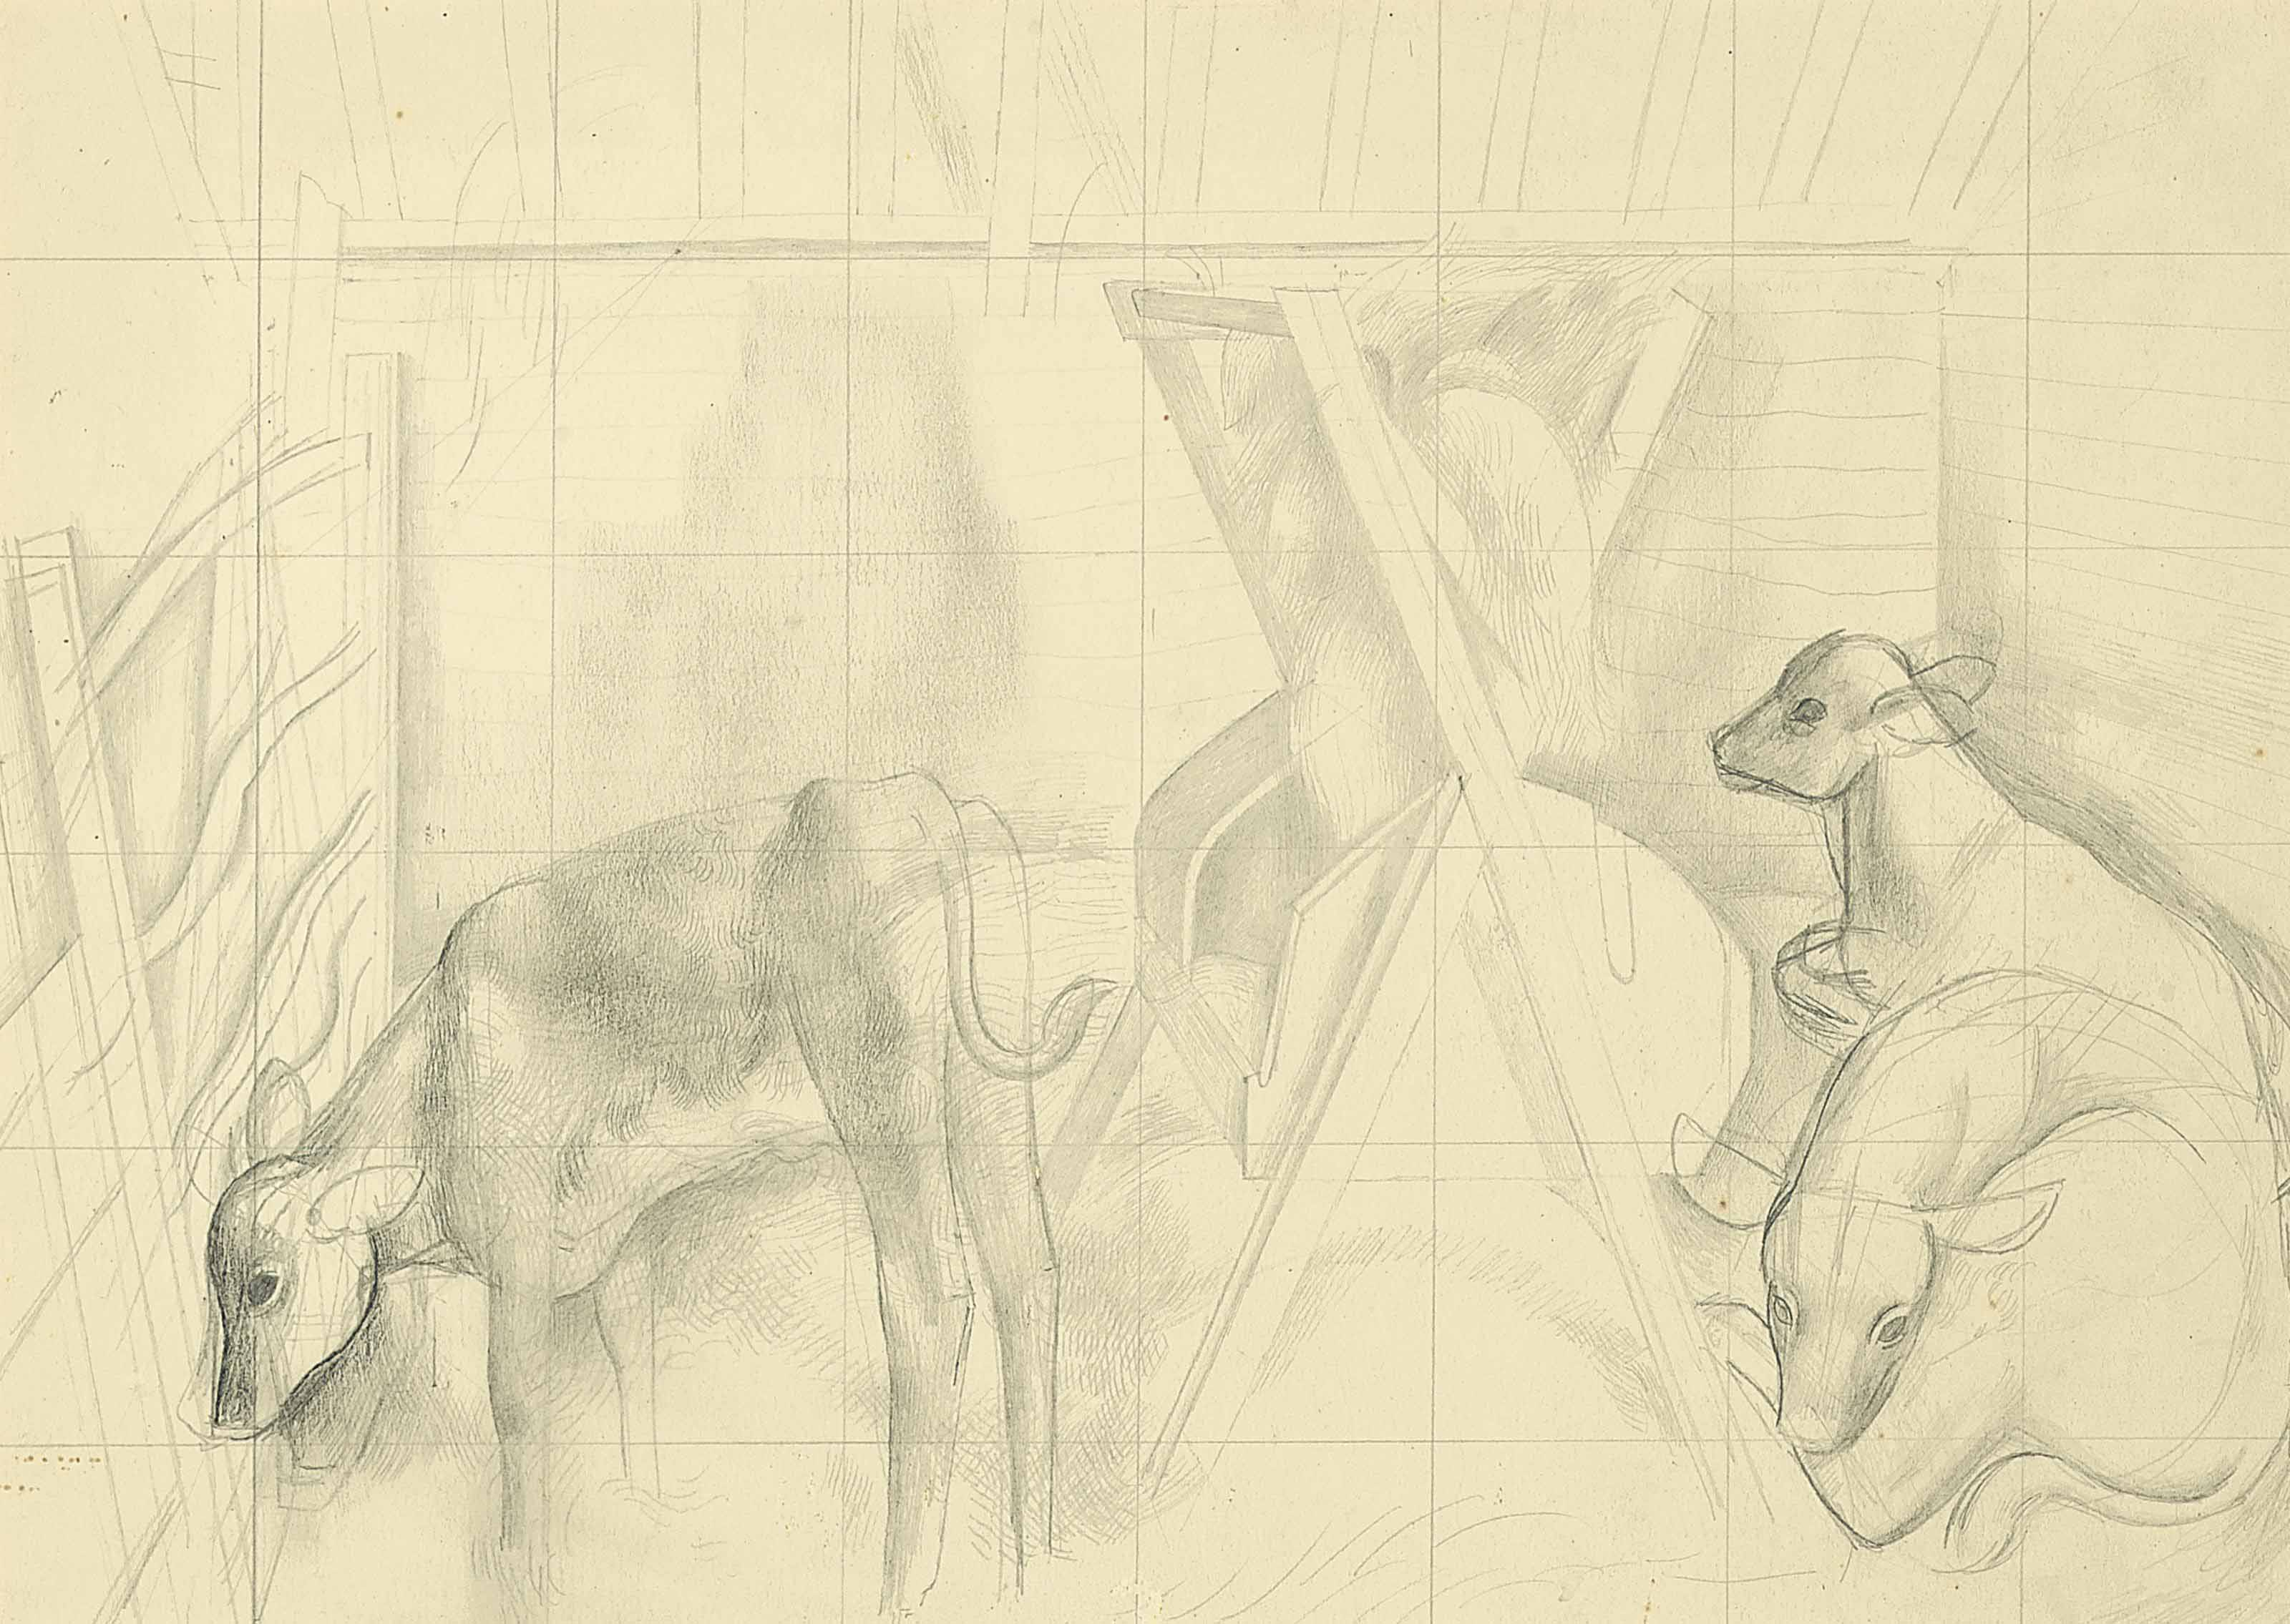 Sketch for Cockfield Barn; Sketch for Dress Circle; Sketch for Morris Dancers; and Sketch for Bull Ring